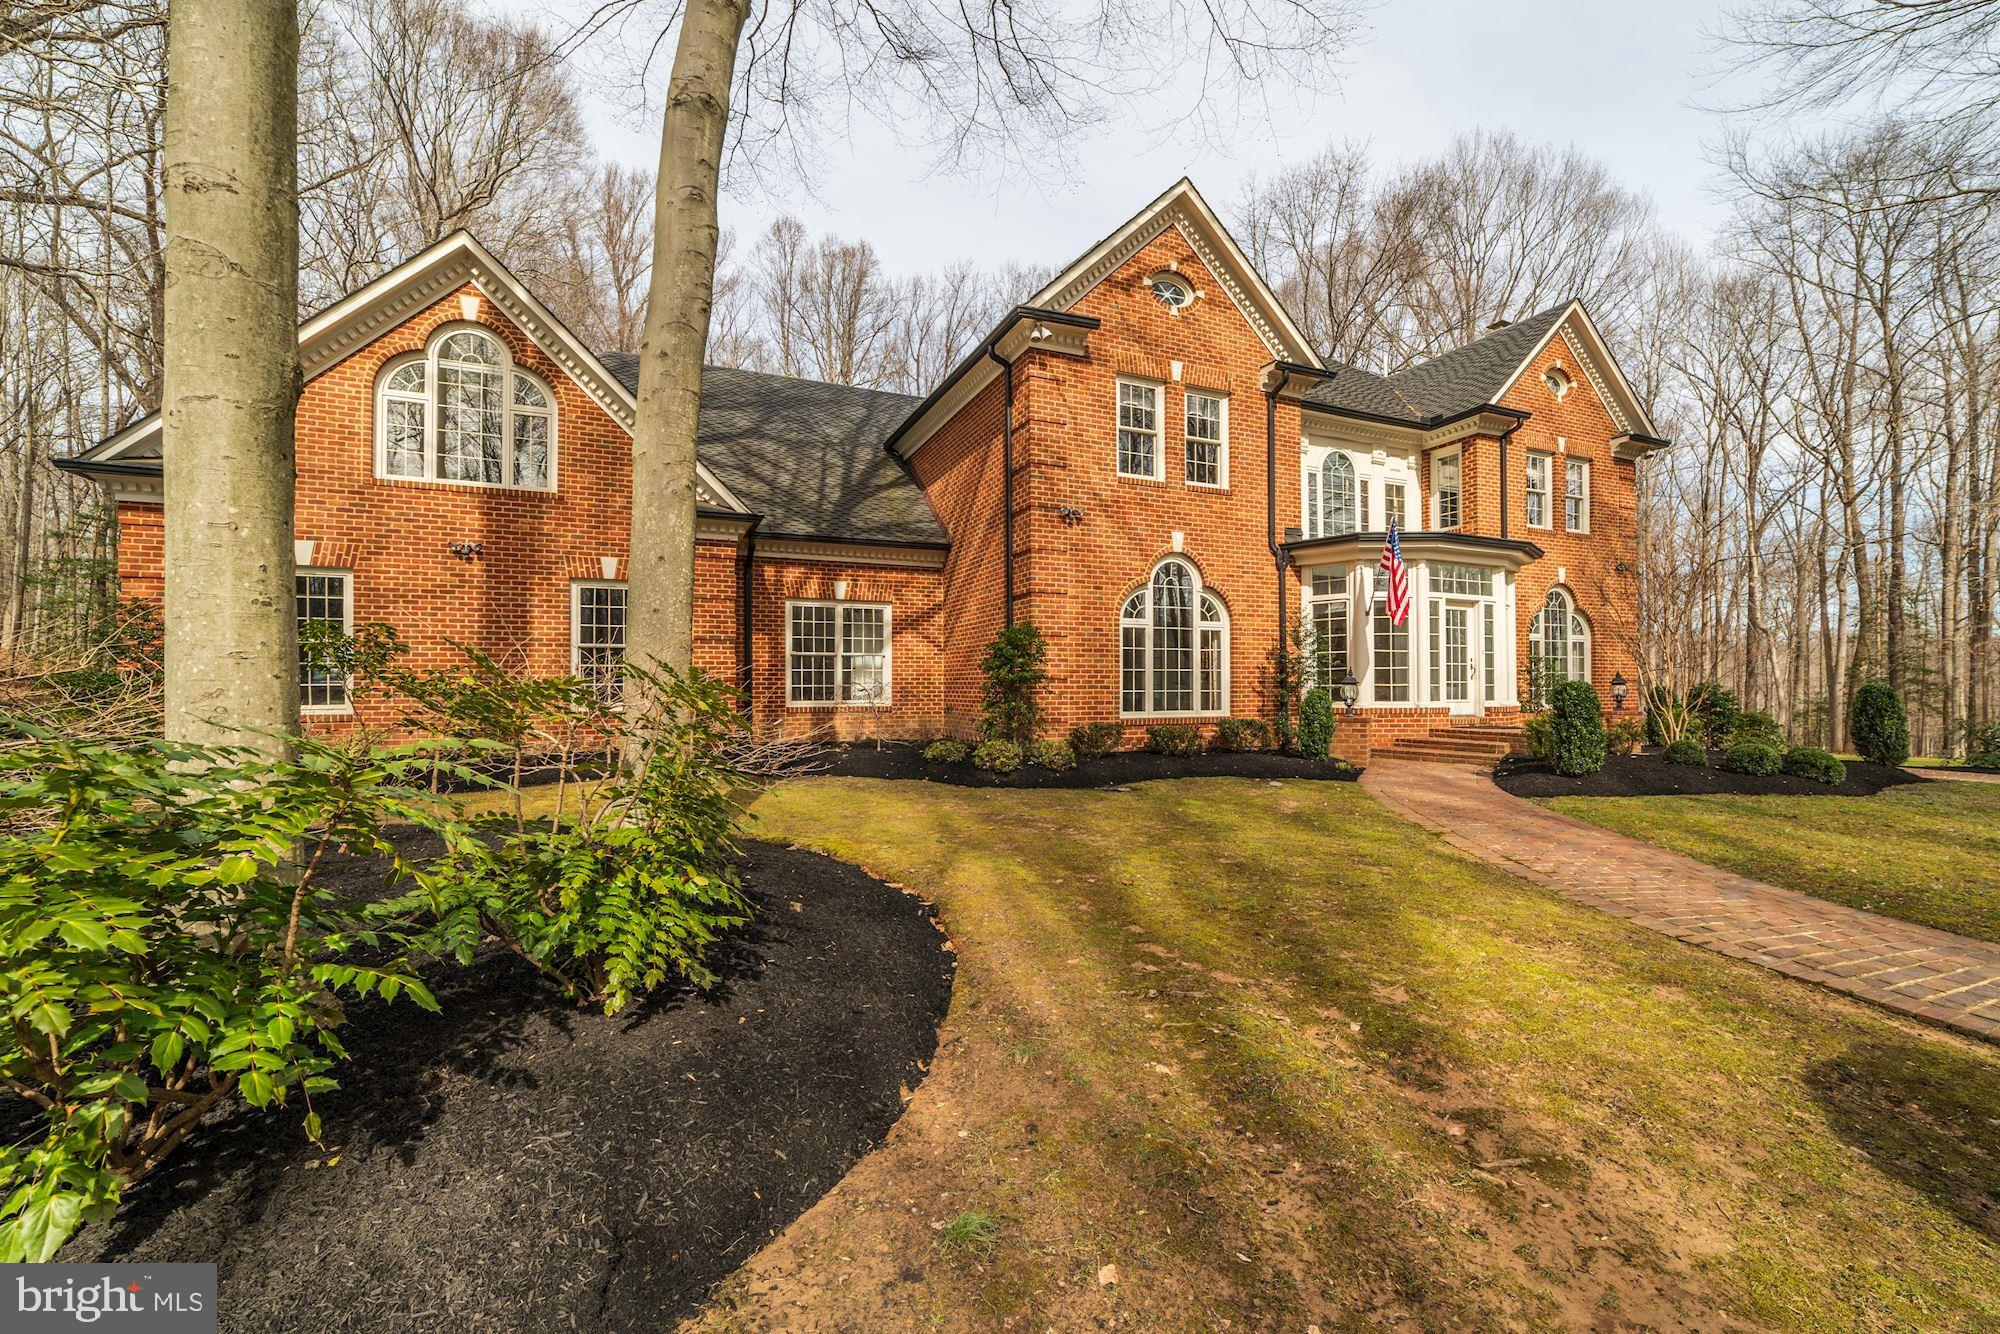 Stunning, custom-built home on 5 private partially wooded acres in historic Fairfax Station. Exterior features include a heated swimming pool and spa, professionally landscaped yard and gardens, and an expansive deck and brick patio, all of which provide a fantastic backdrop for relaxing and entertaining.  Interior features include hardwood inlay paneling and floors, distinctive marbling, three fireplaces, and spacious bedrooms with loads of closet space,  The lower-level, which has direct access to the pool, hosts a pool changing room, a recreation room, fitness room, and a en-suite guest quarters. Truly a remarkable home that will not disappoint.